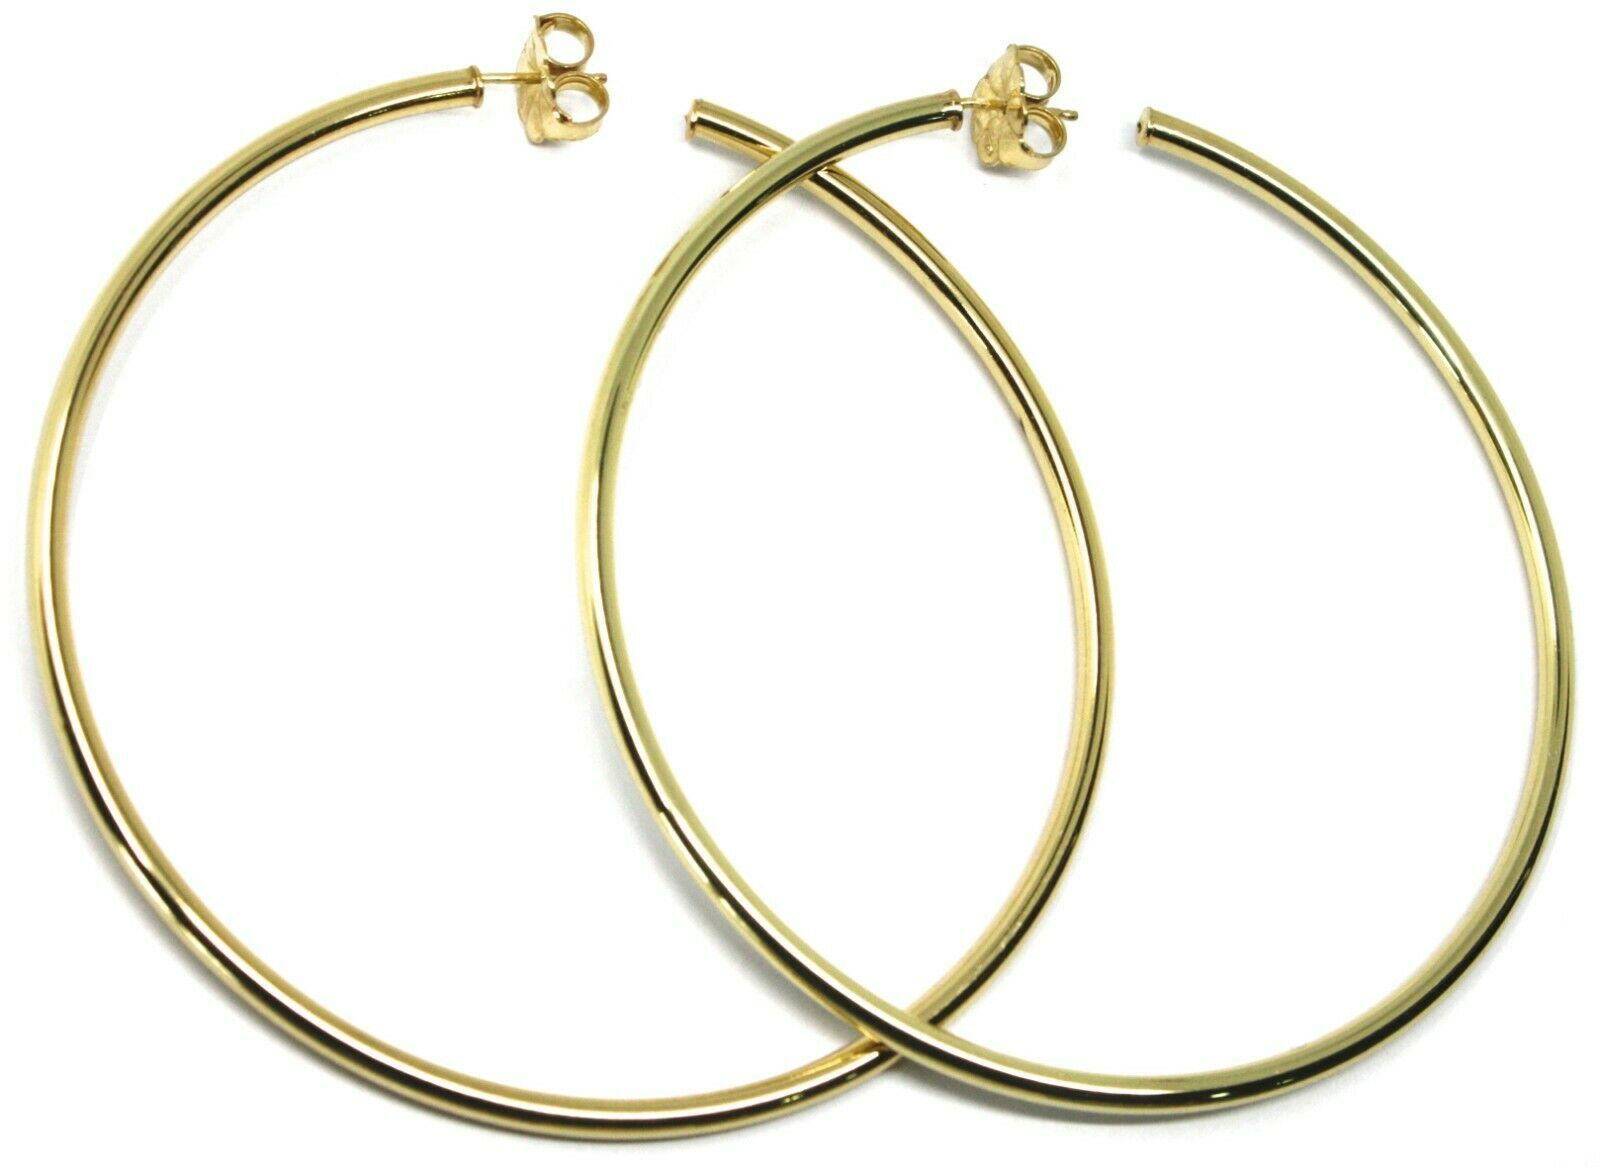 925 STERLING SILVER CIRCLE HOOPS BIG EARRINGS 8.5cm x 3mm YELLOW SMOOTH